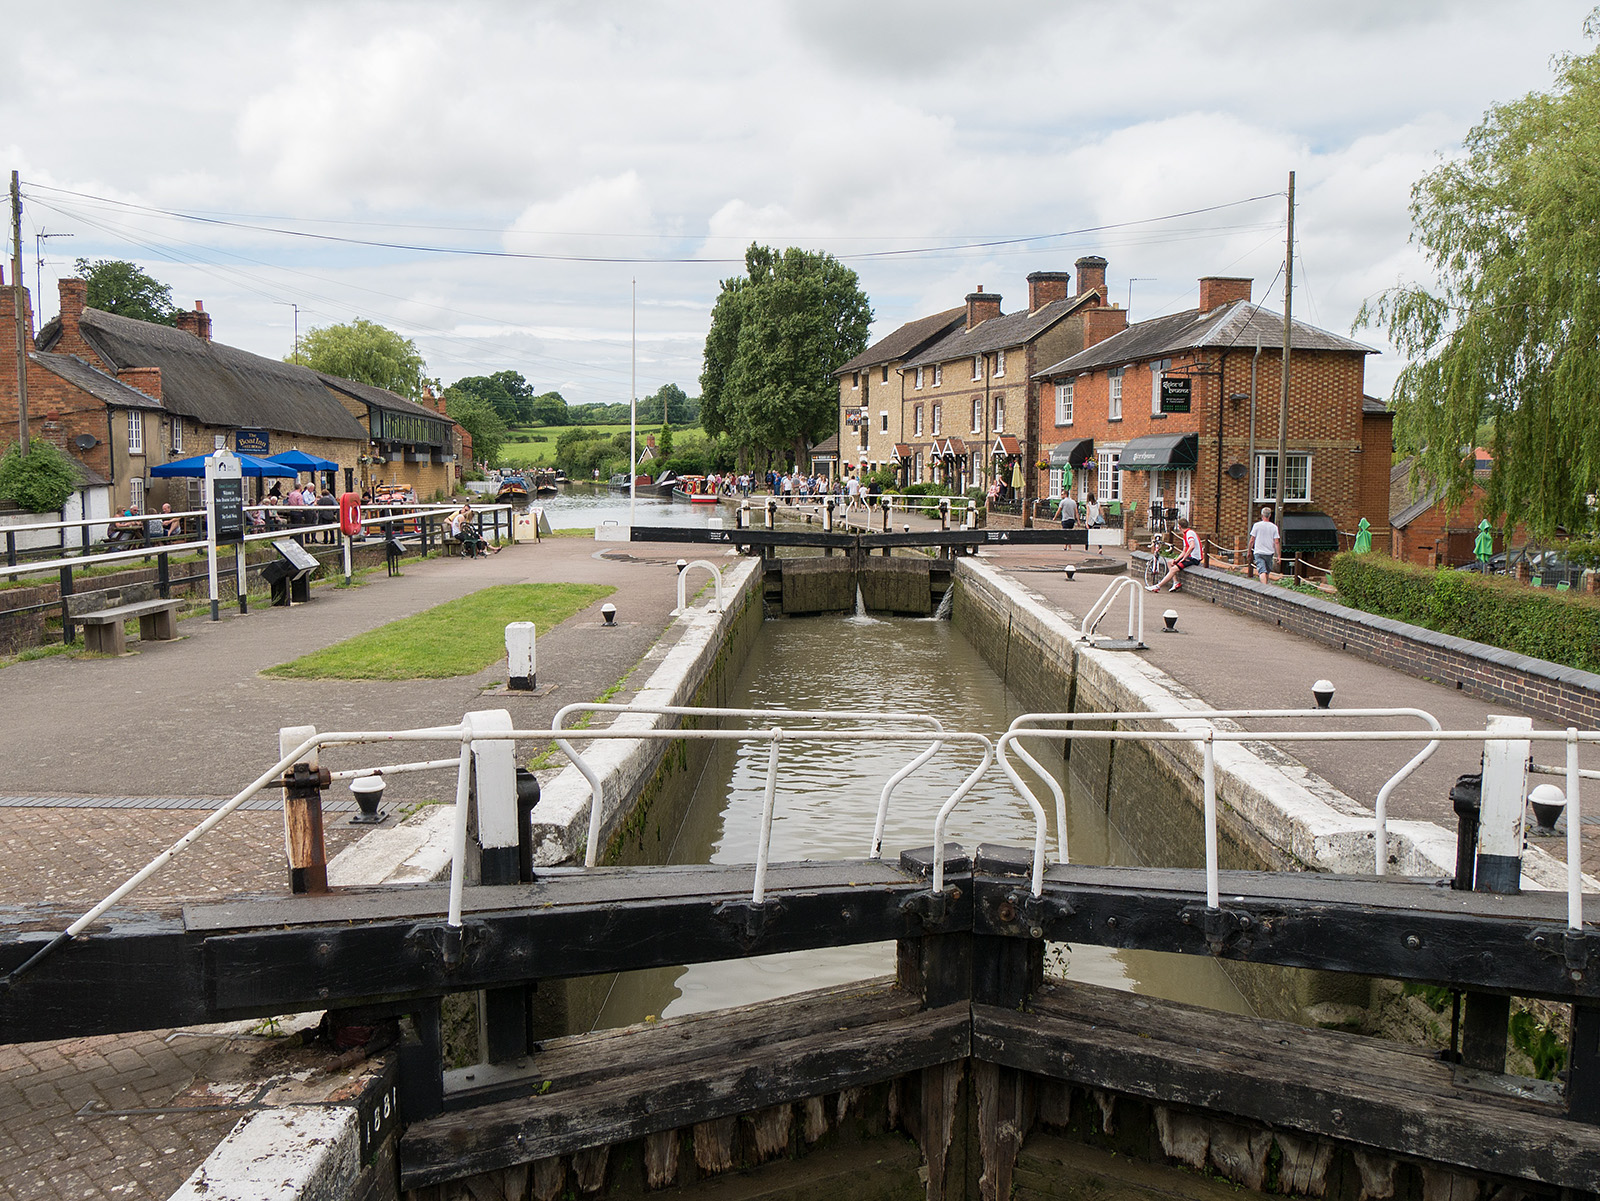 Top lock and canalside museum at Stoke Bruerne